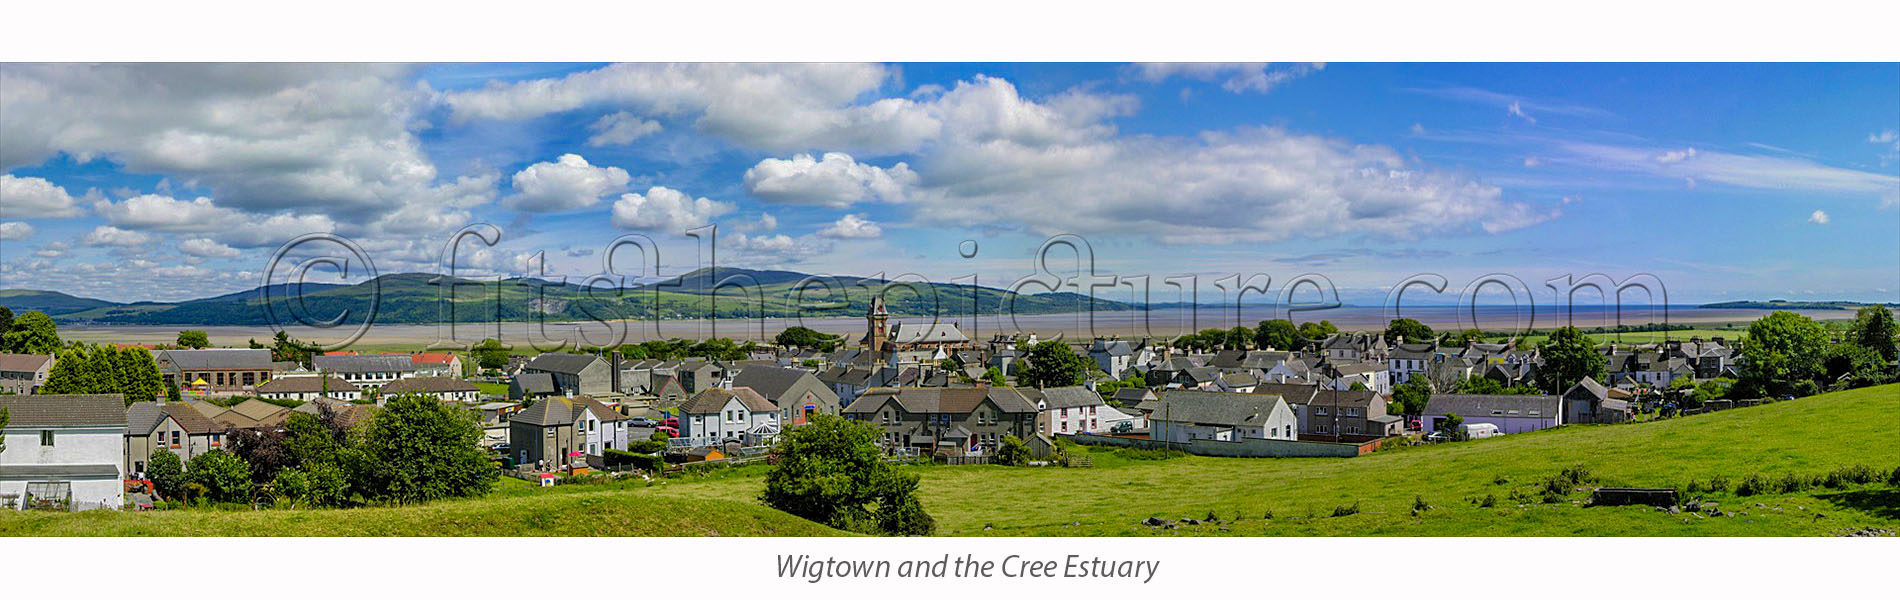 wigtown_summer.jpg